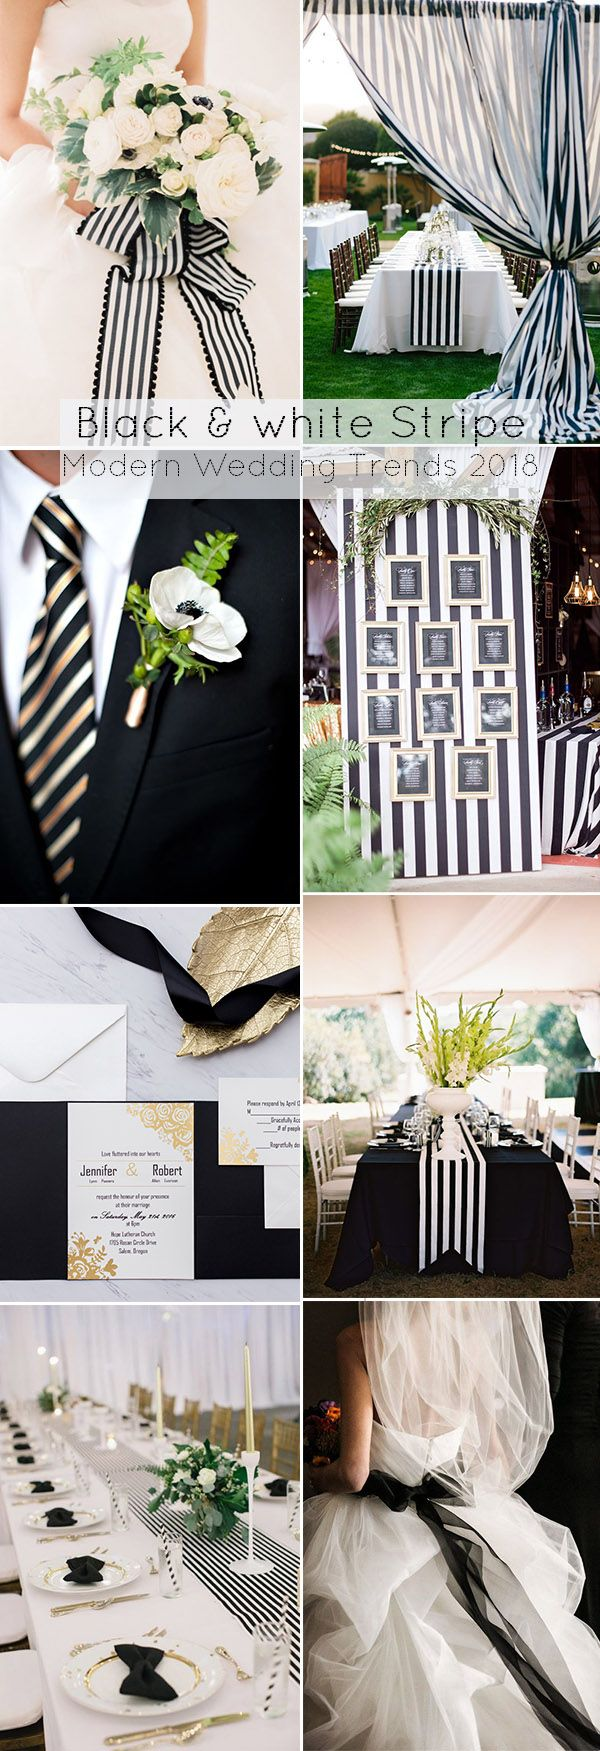 Black and White Striped Wedding Ideas for 2017 and 2018 Trends